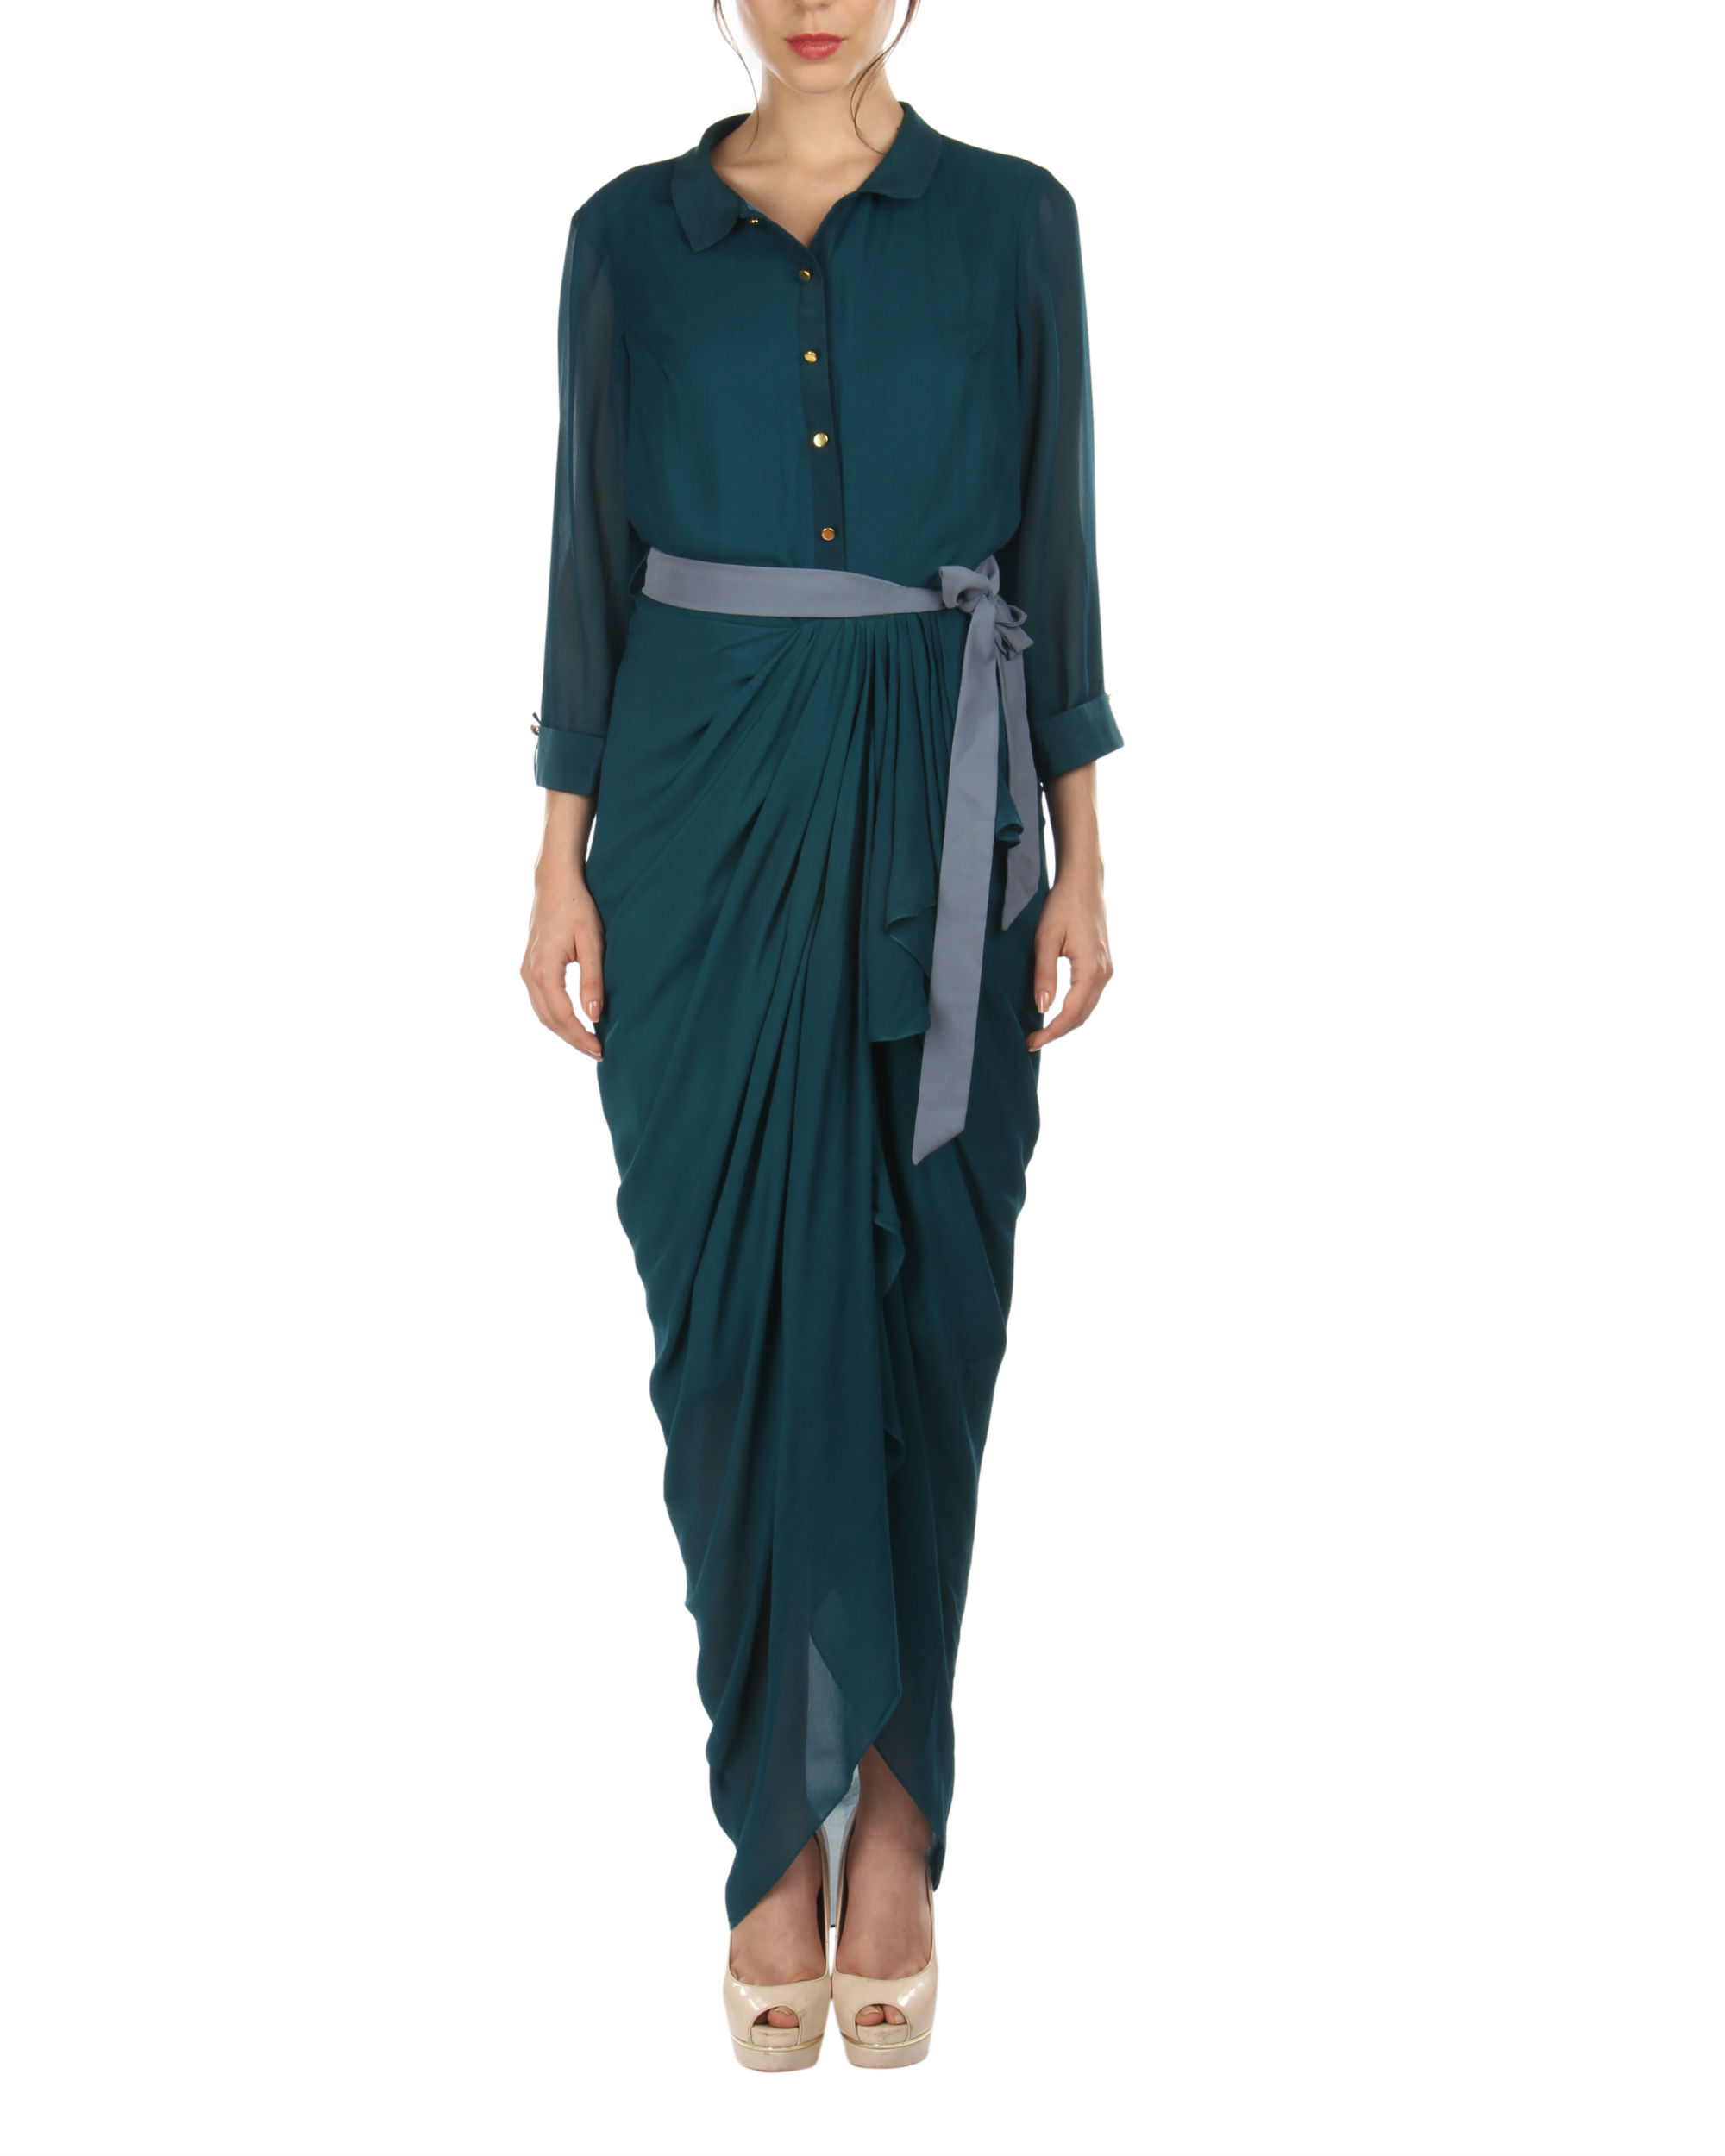 Teal dhoti wrap dress